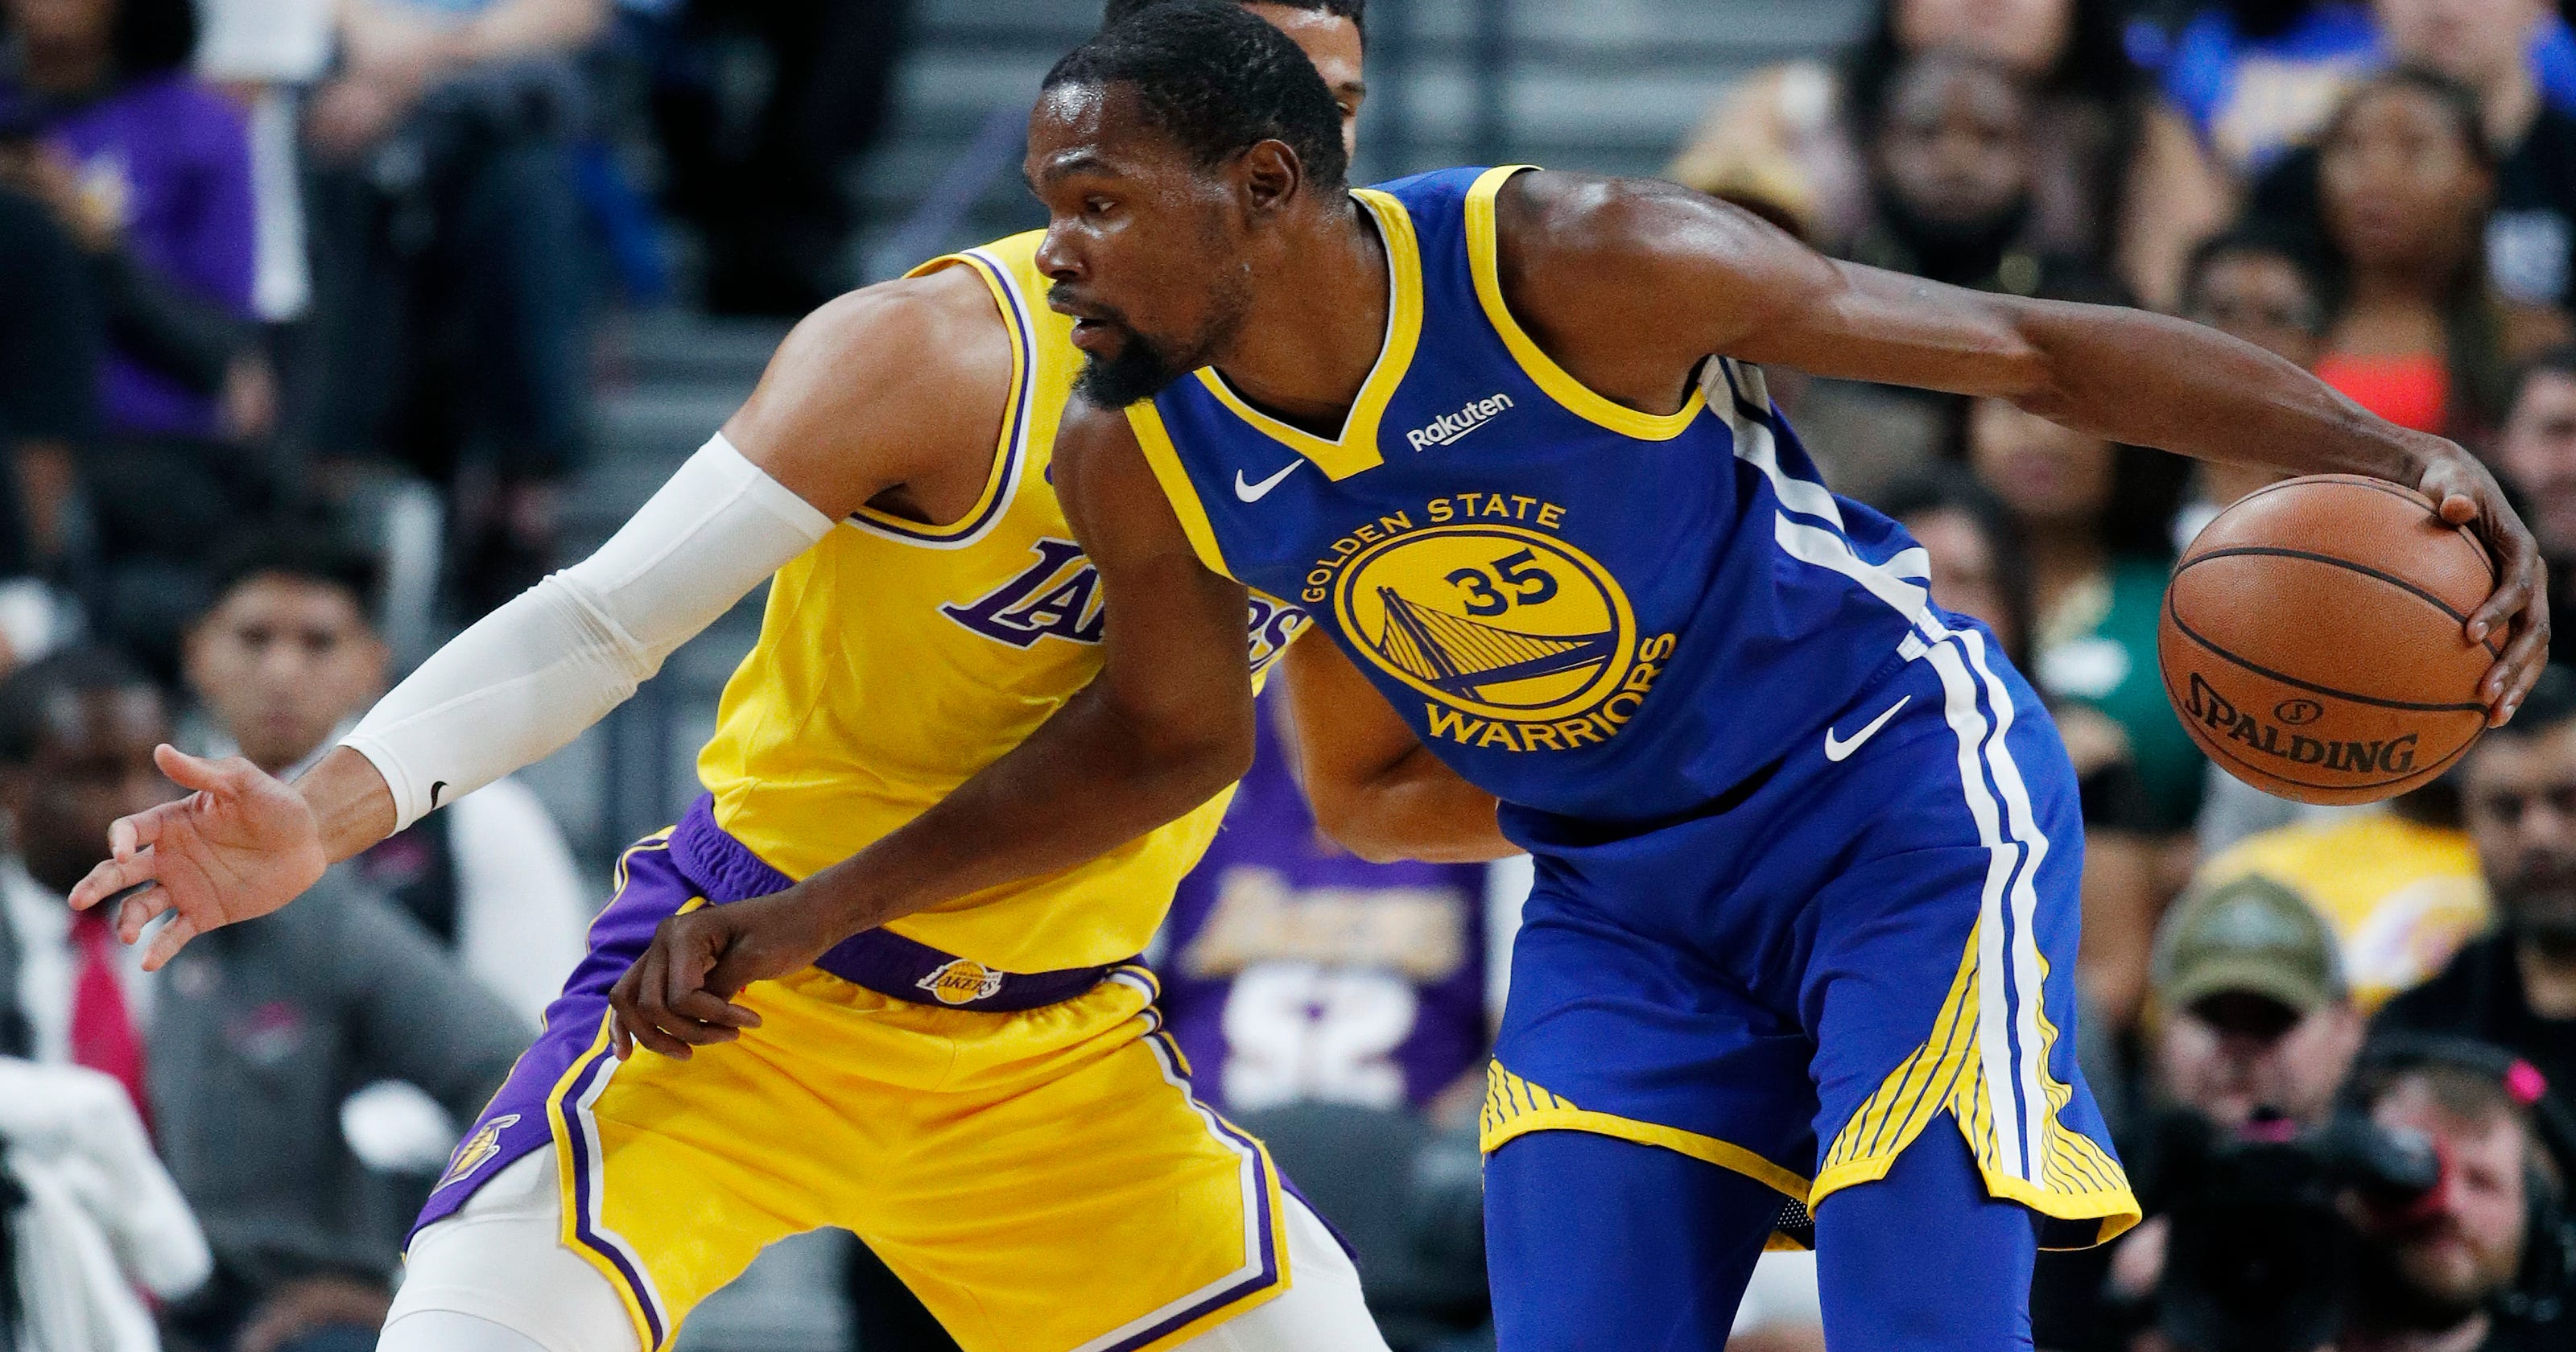 da14972d5e1 Lakers-Warriors most-watched NBA preseason game ever on ESPN